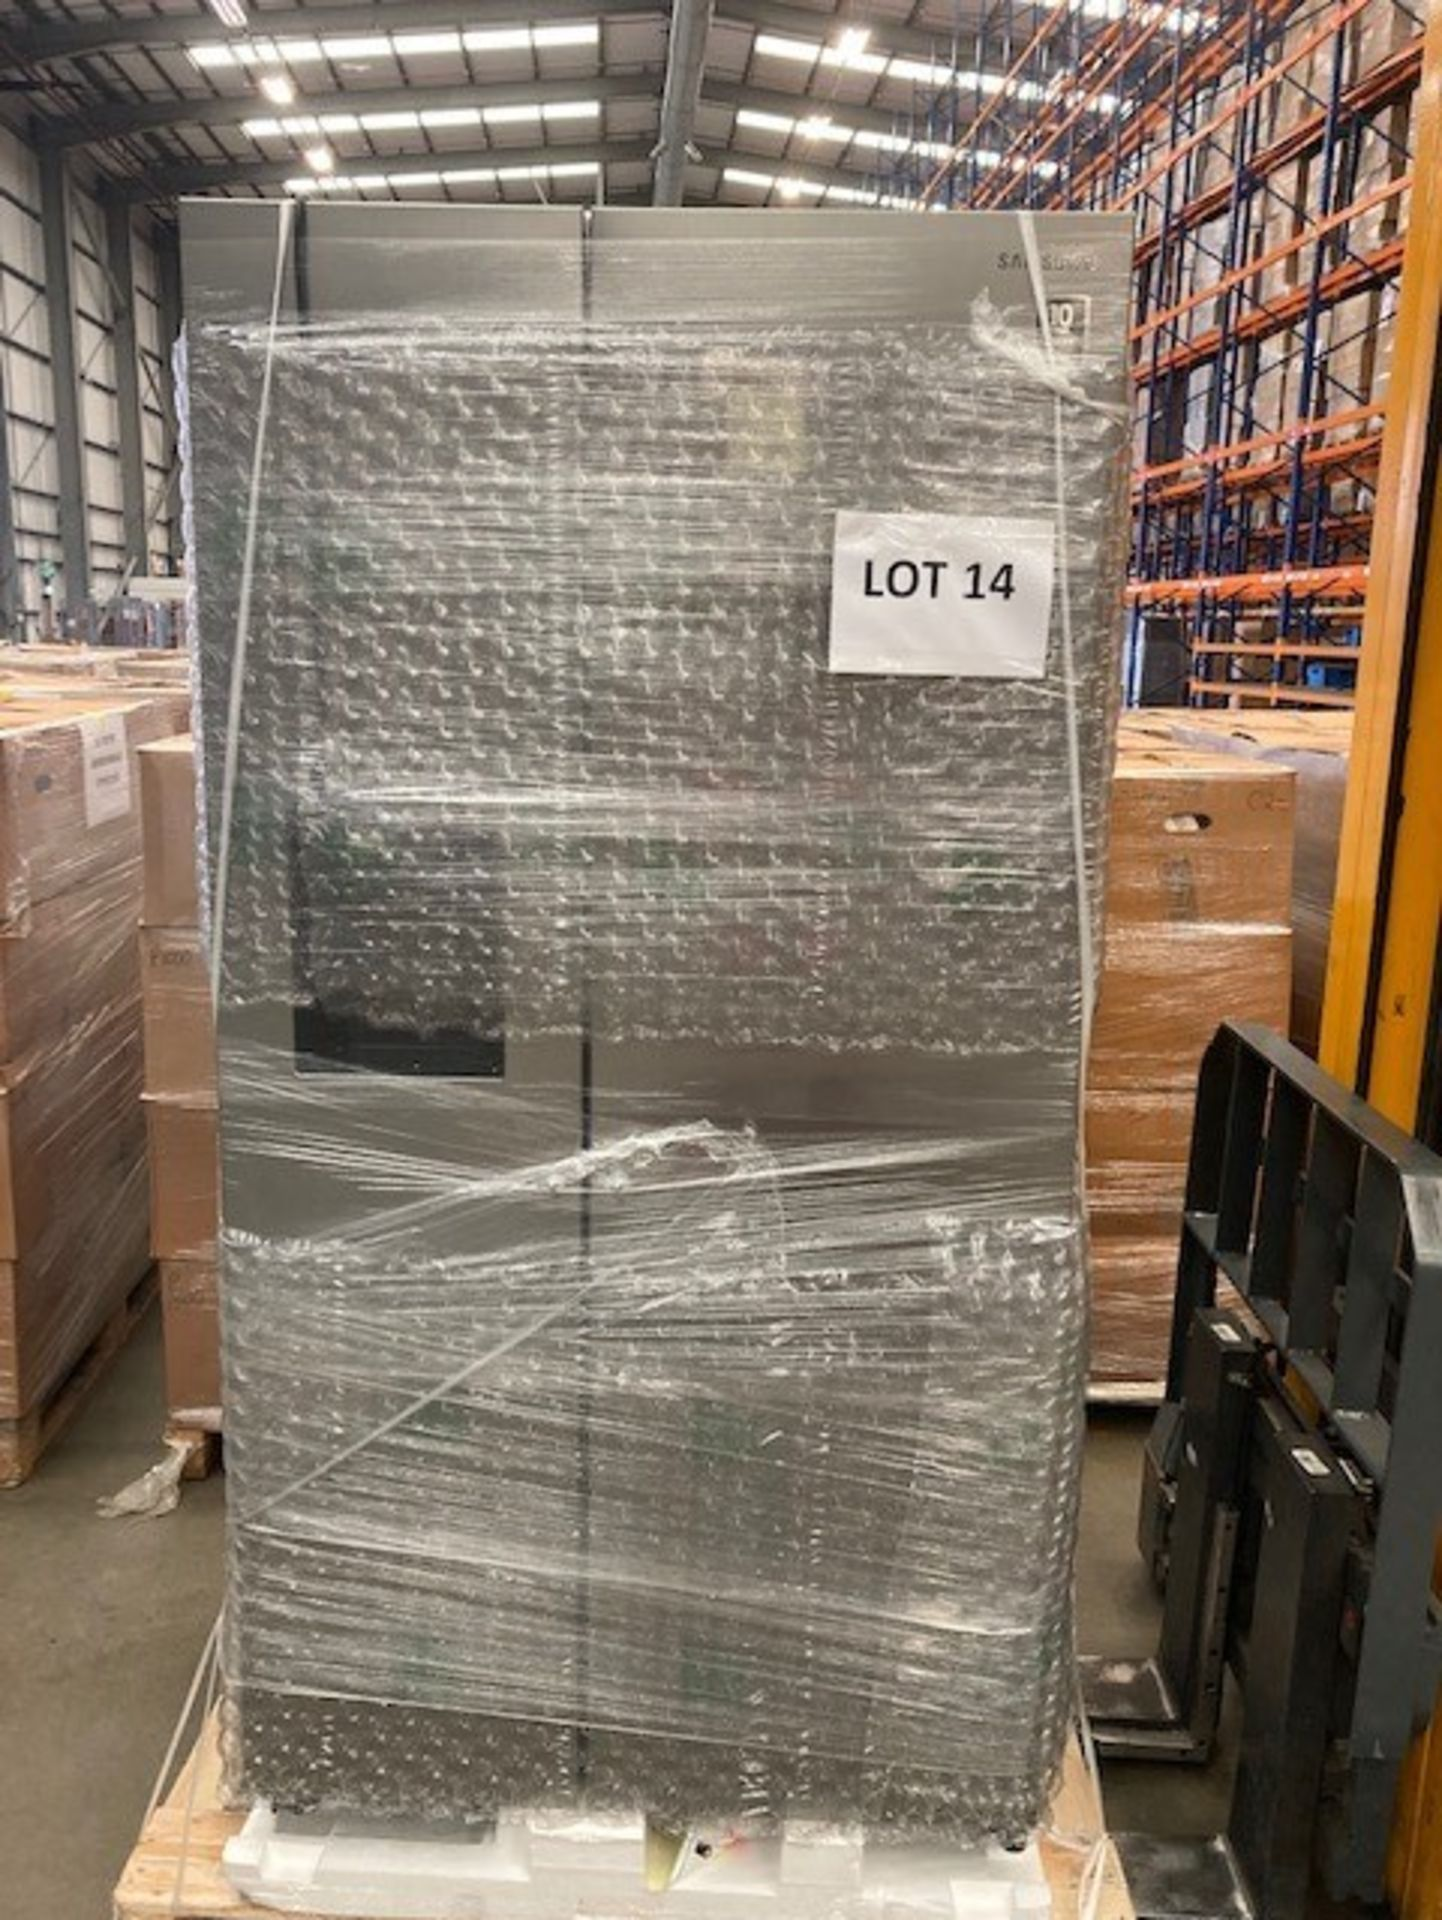 Pallet of 1 Samsung Water & Ice Fridge freezer. Latest selling price £1,299.99* - Image 5 of 7